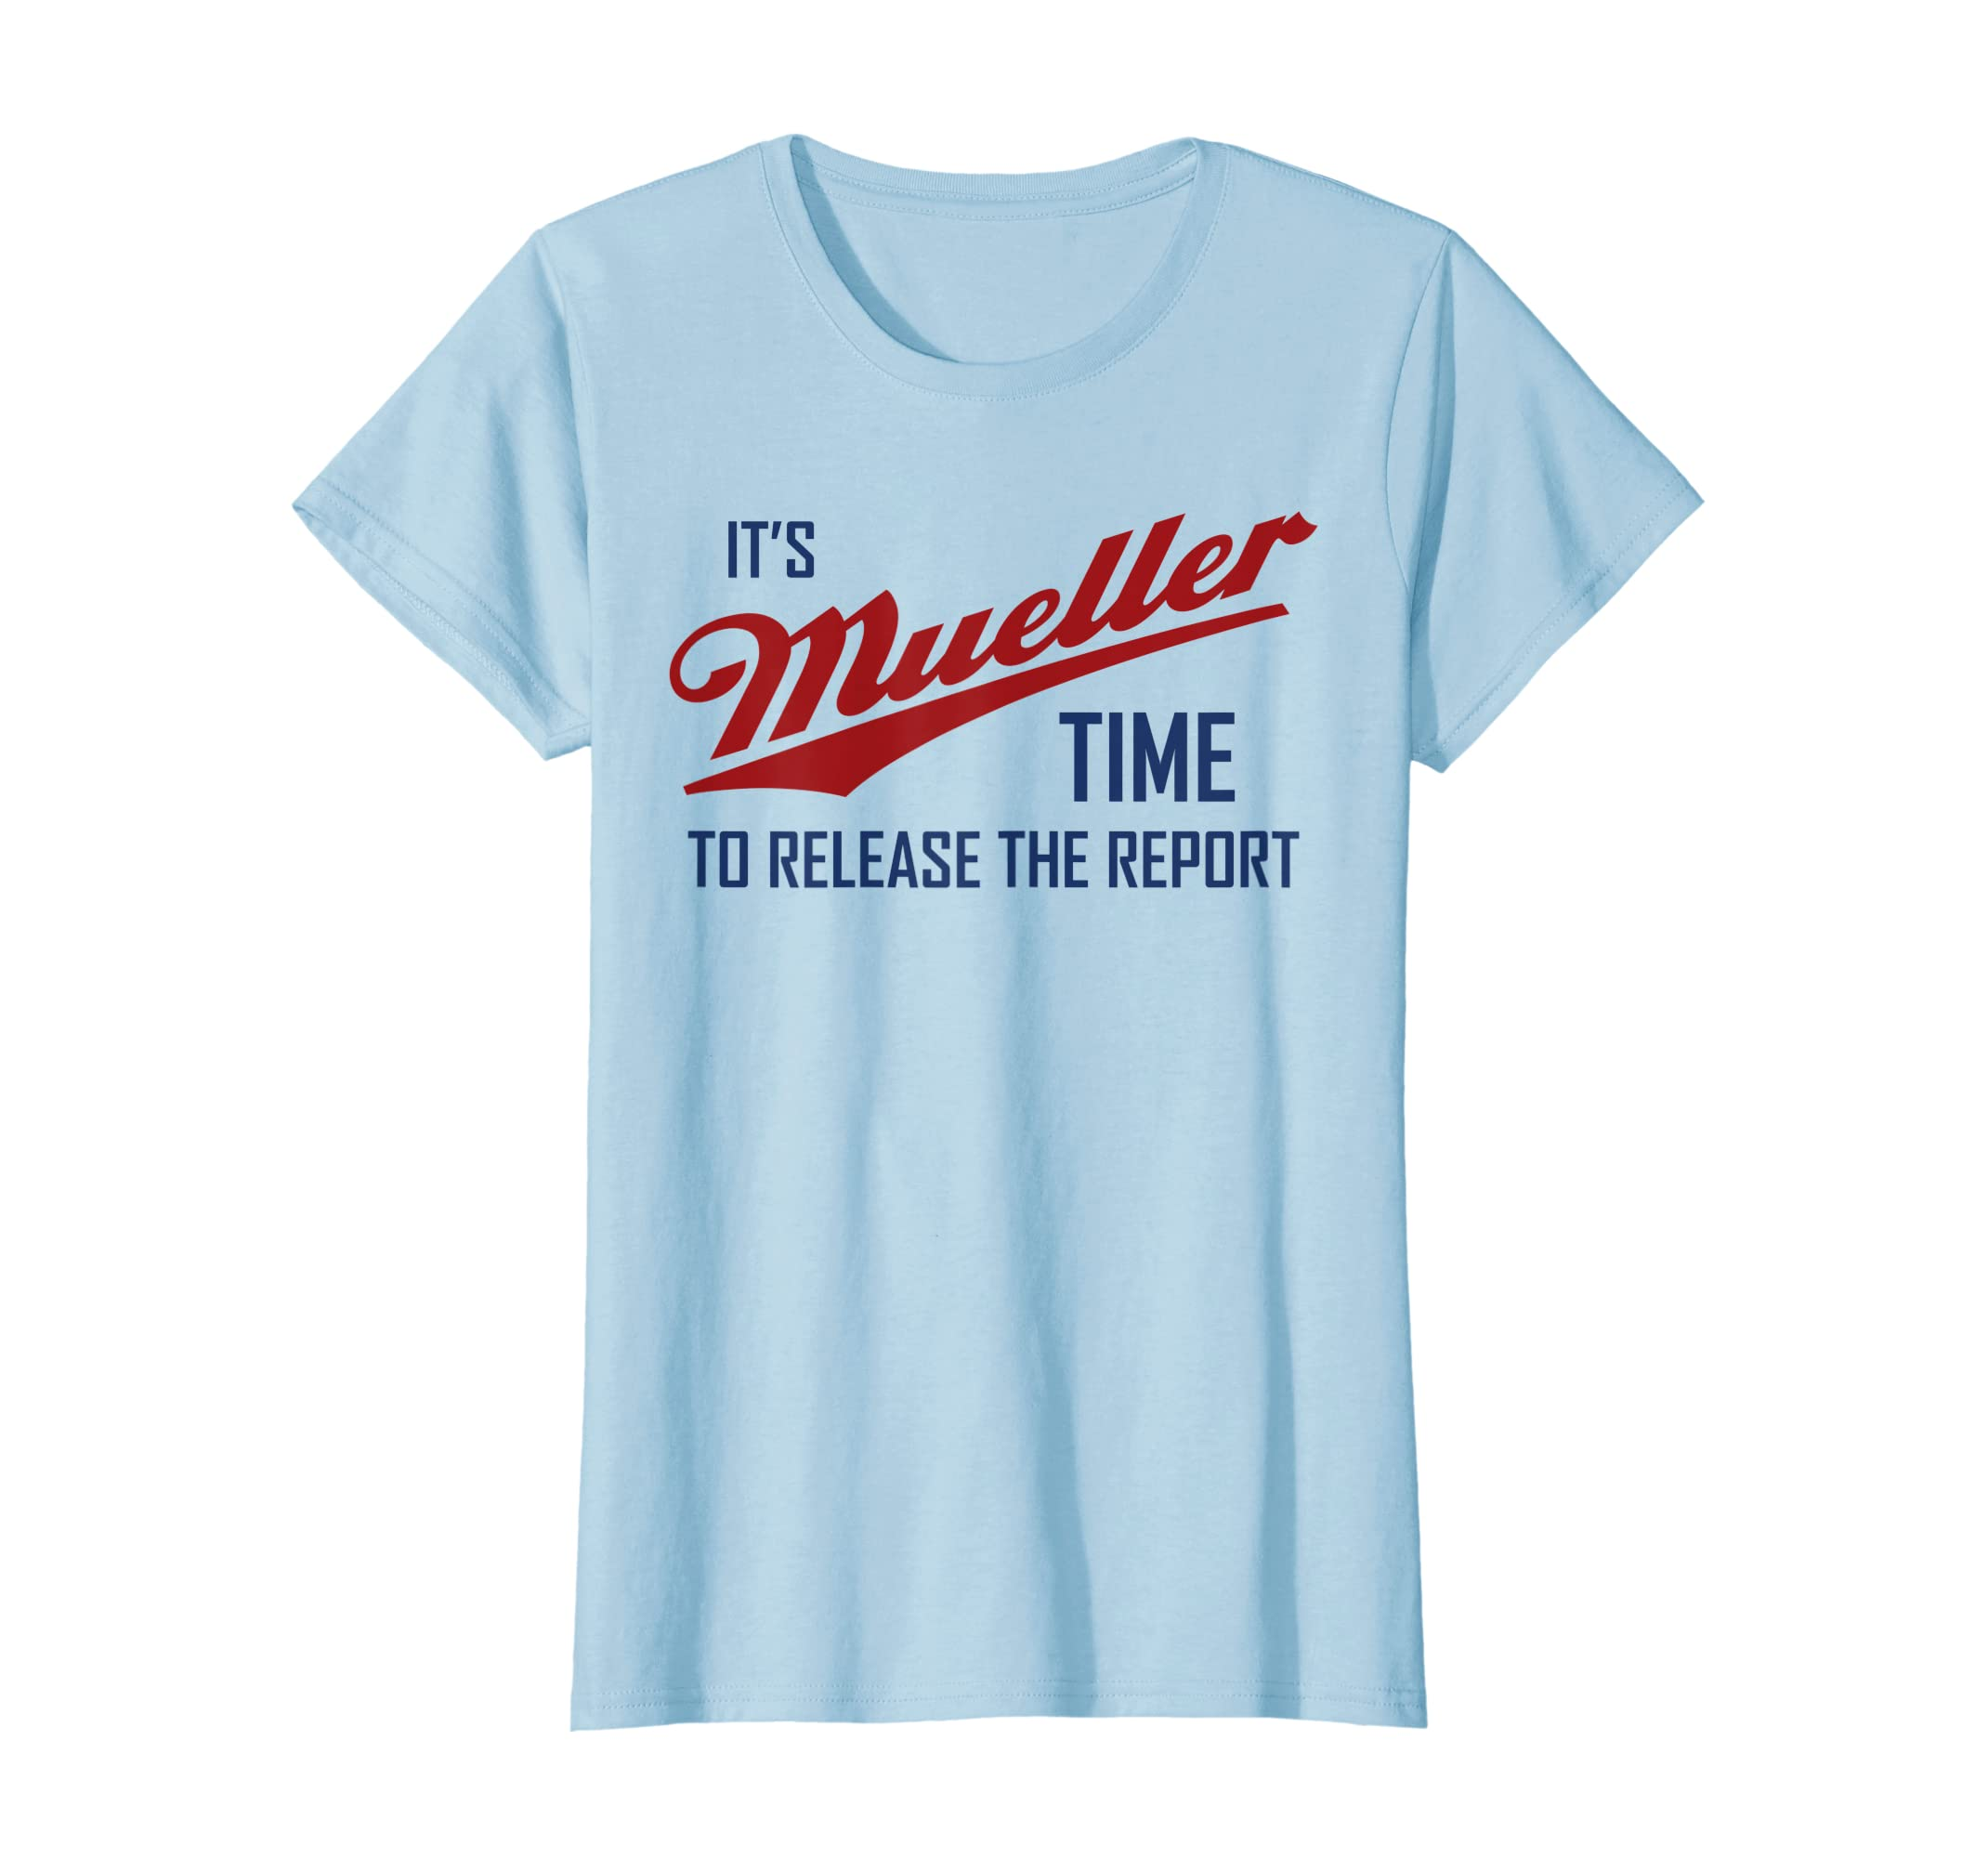 1456f38bf Amazon.com: It's Mueller Time To Release The Report! Funny T-Shirt: Clothing